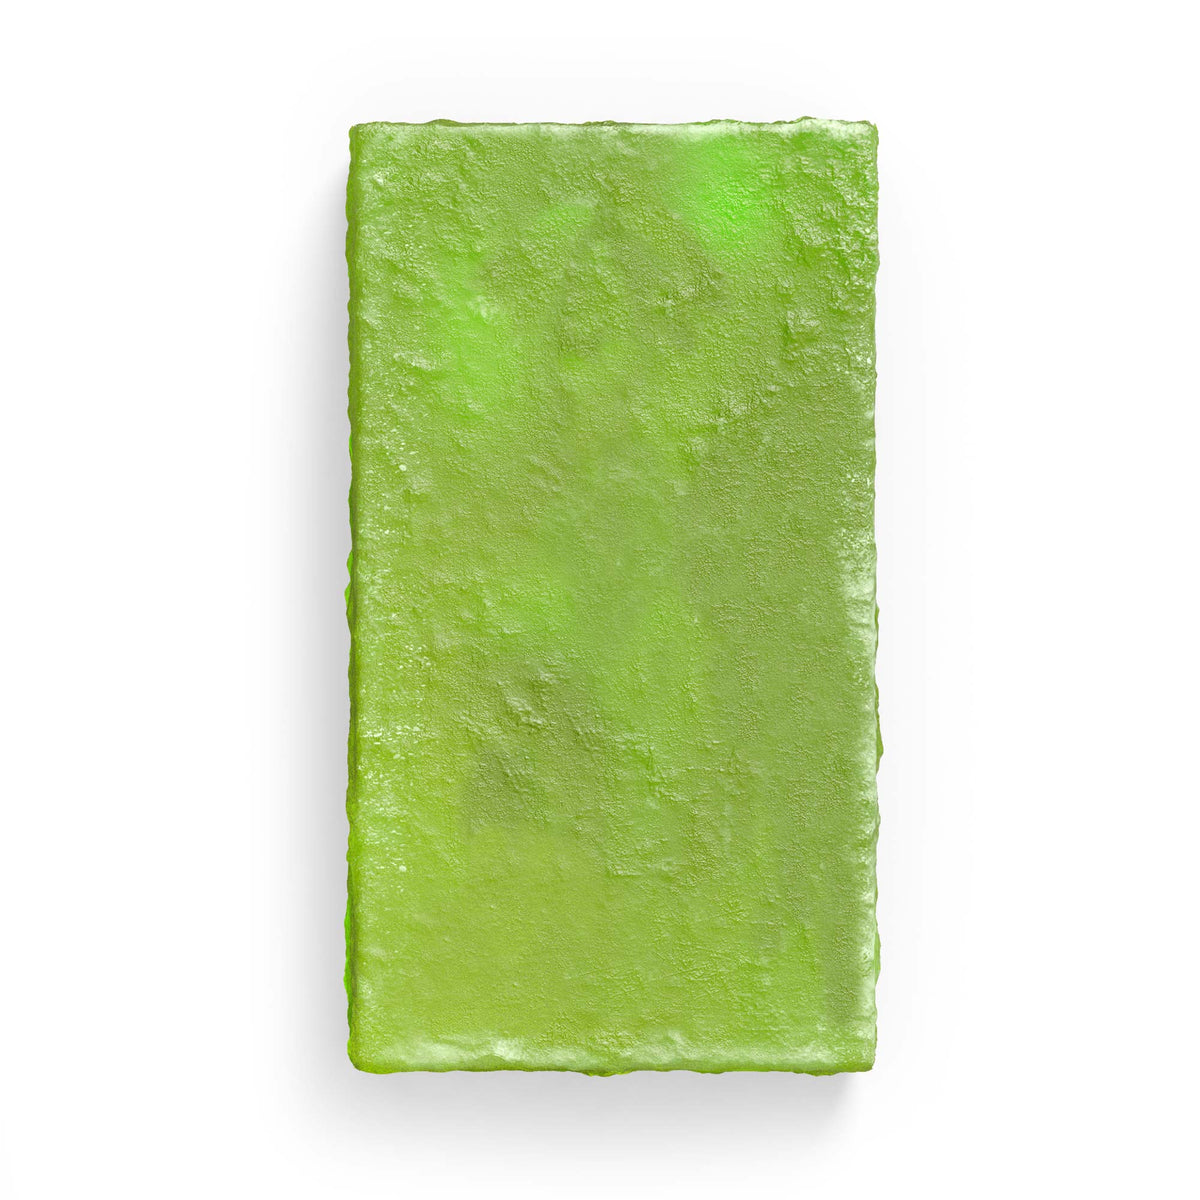 Honeydew Solid Soap Bar